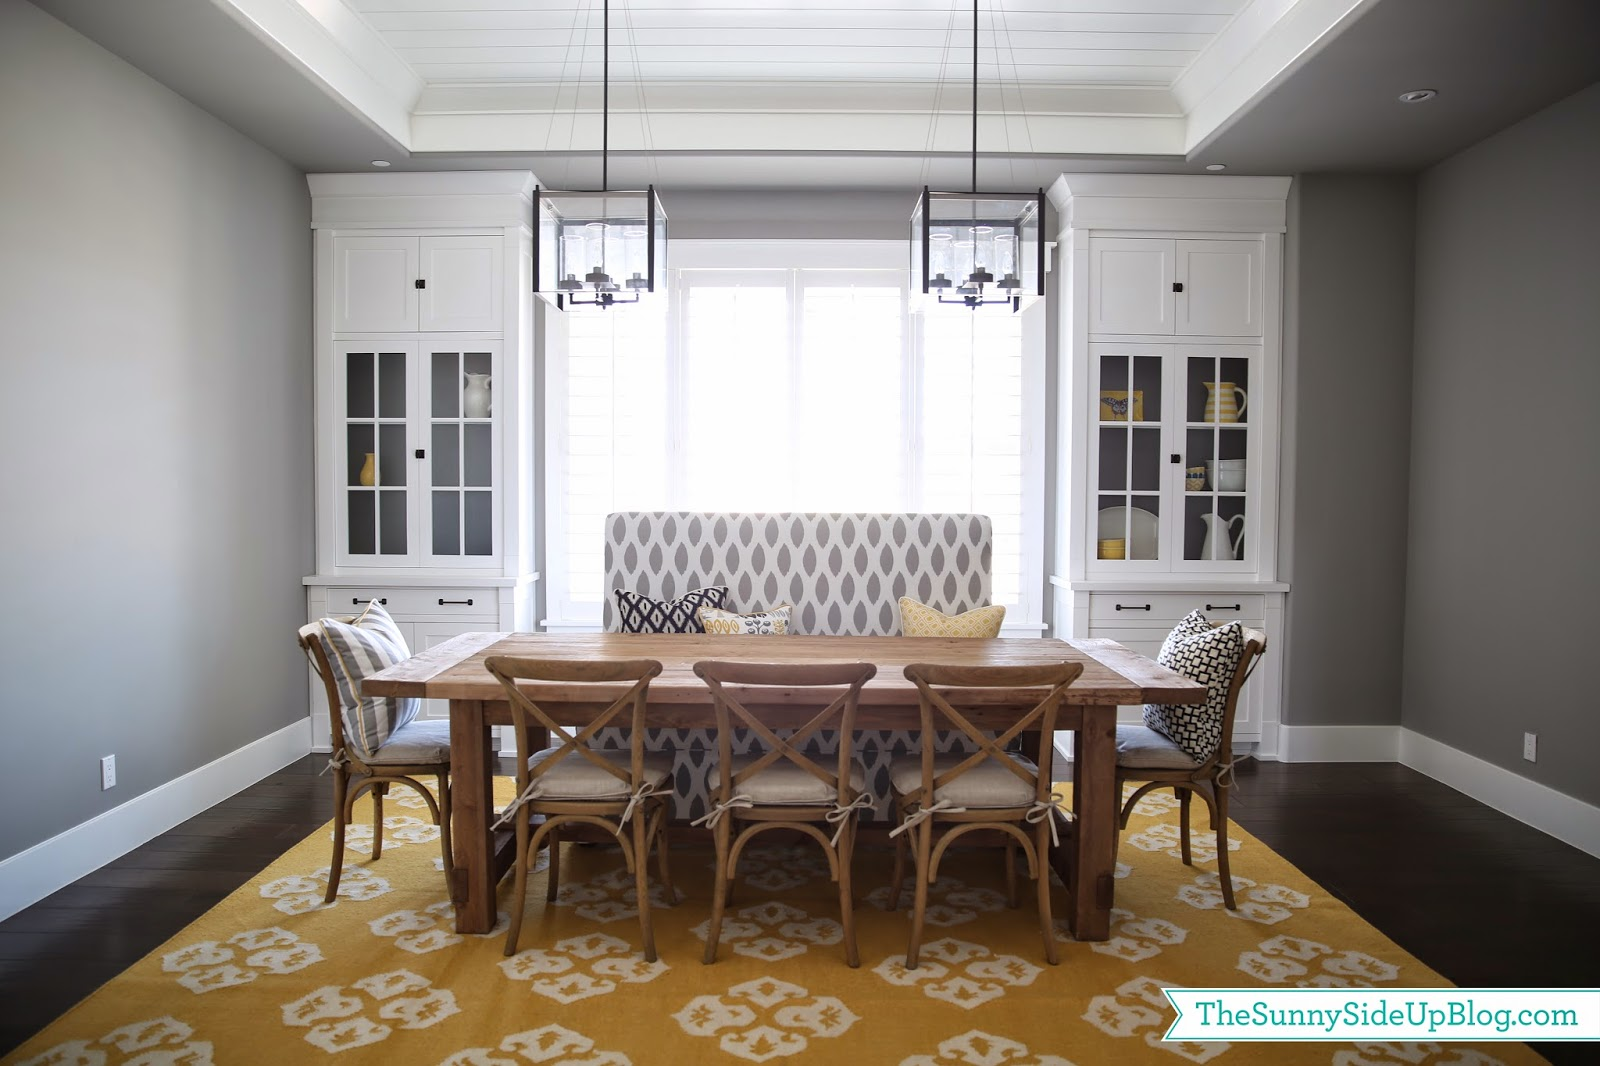 Dining Room Decor Update Bench Chairs Pillows The Sunny Side Up Blog